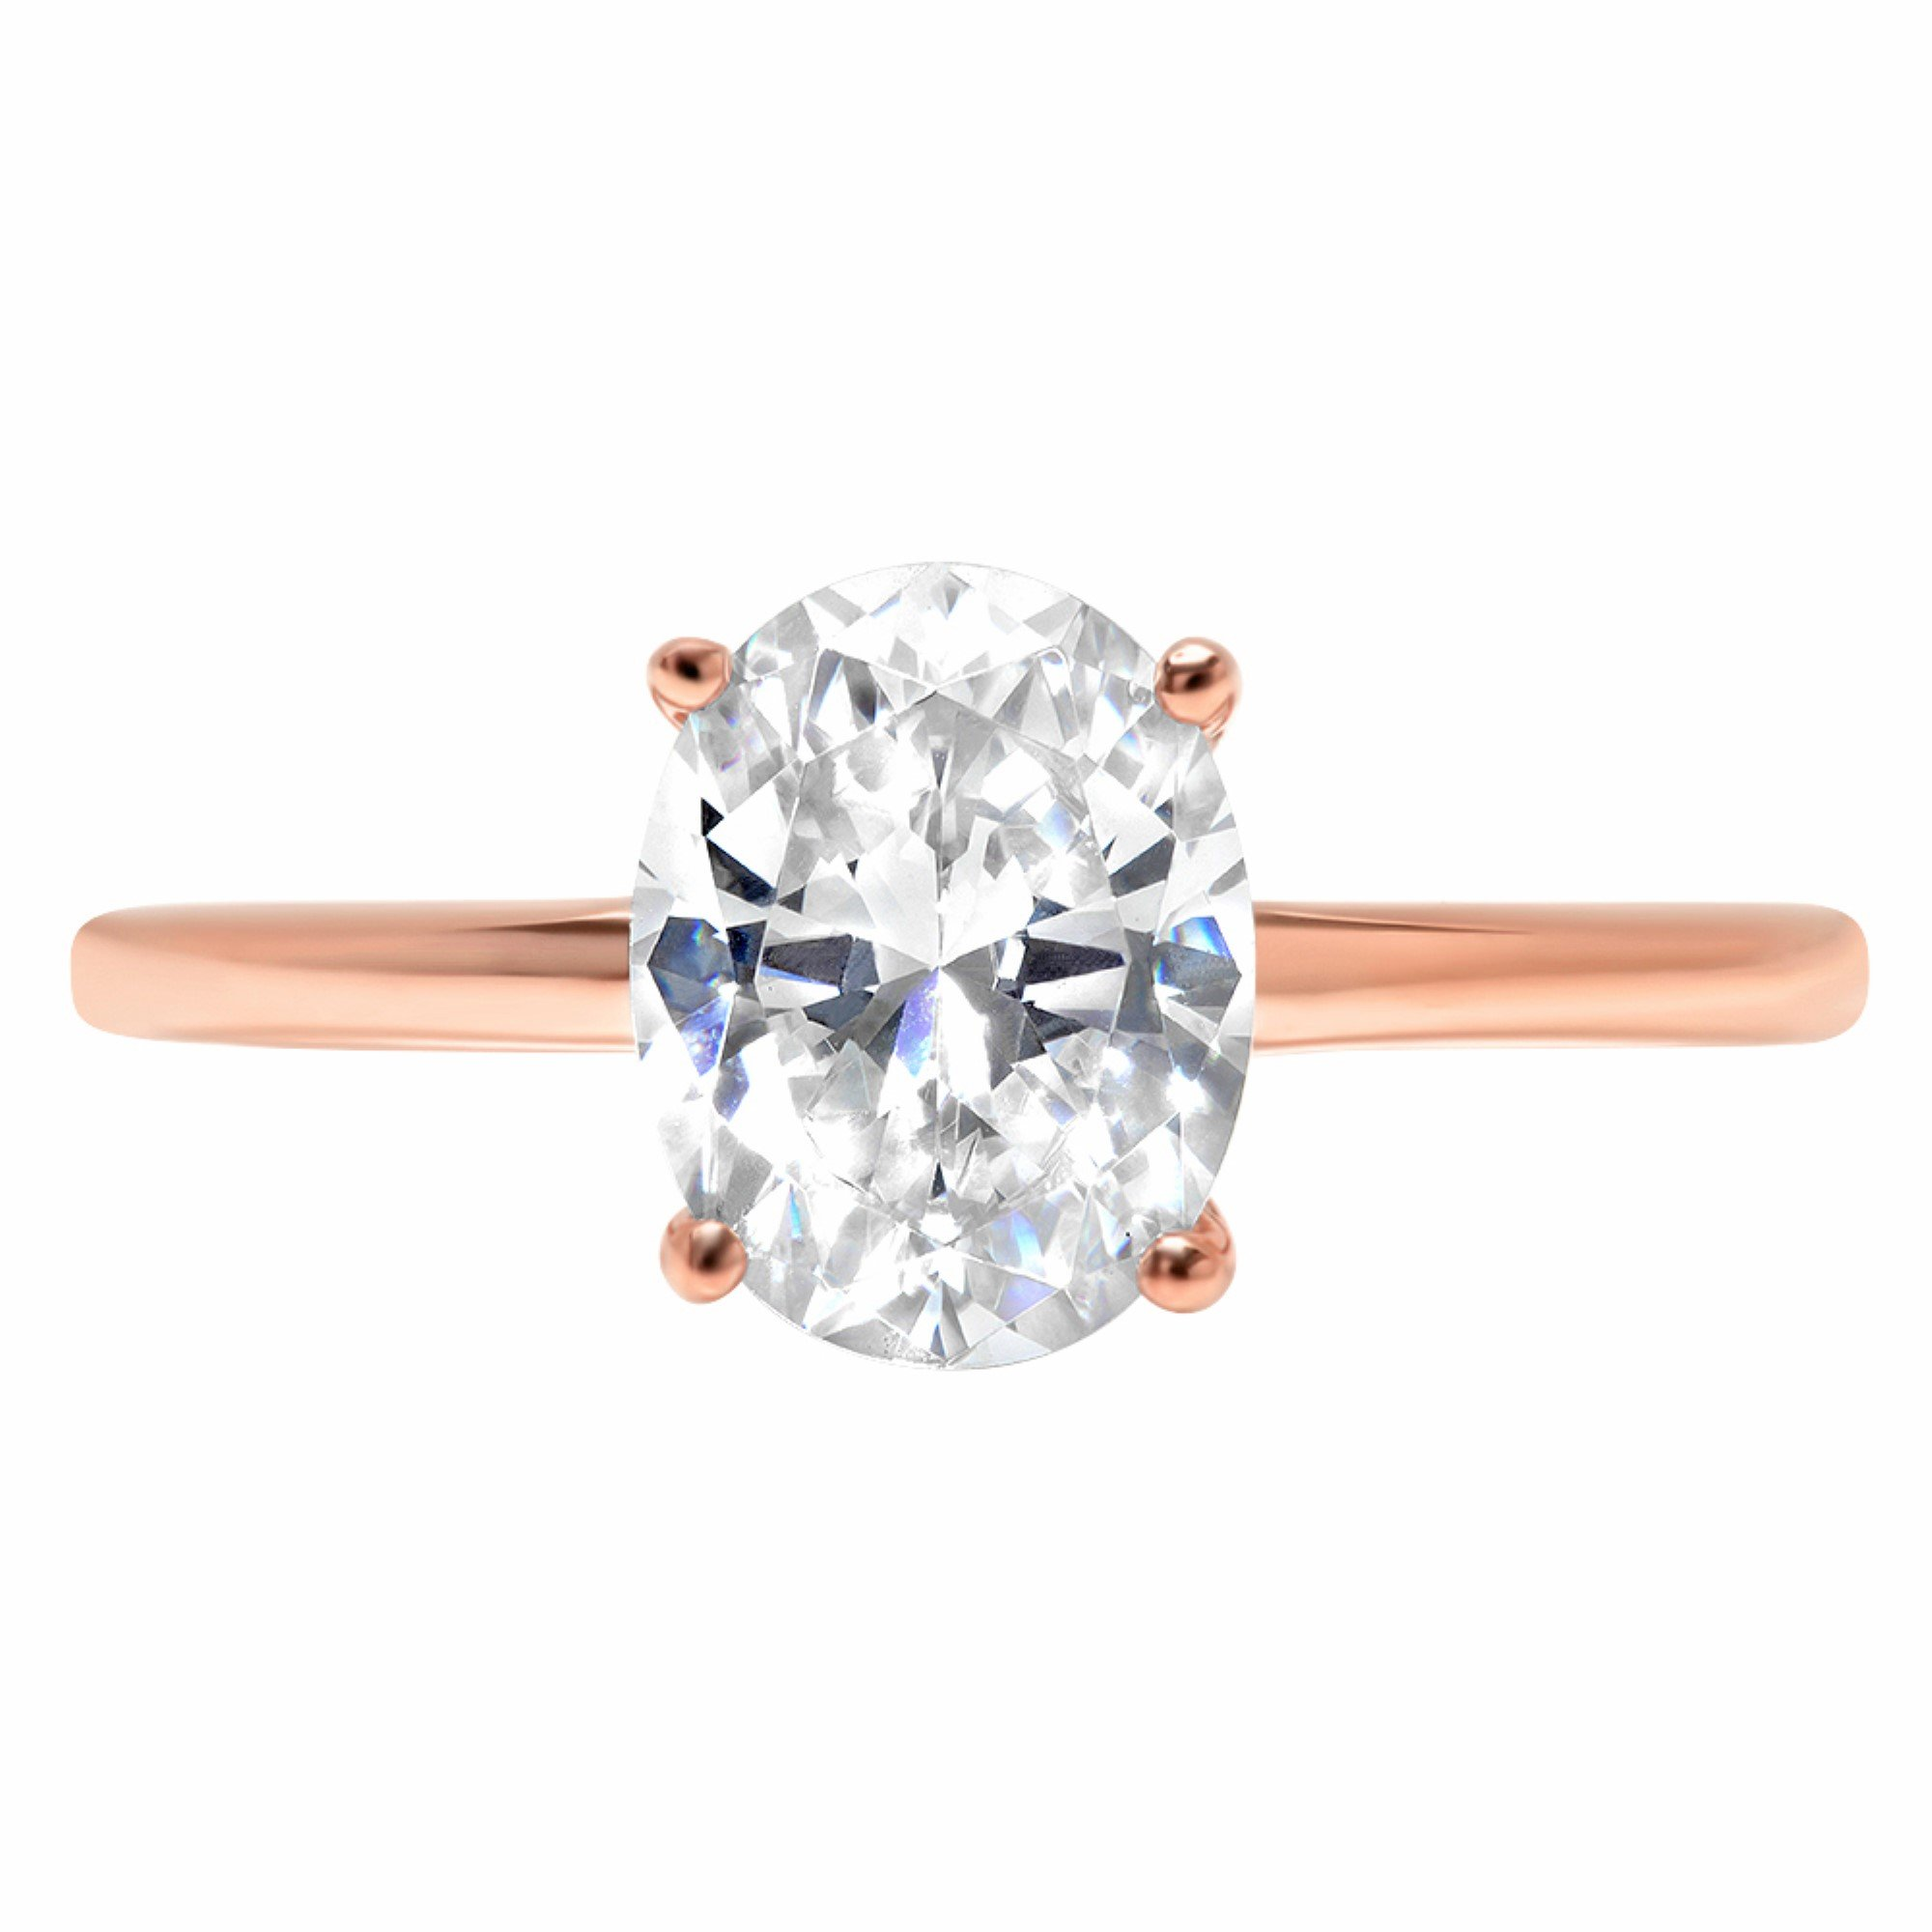 2.5ct Brilliant Oval Cut Solitaire Highest Quality Moissanite Ideal VVS1 D 4-Prong Engagement Wedding Bridal Promise Anniversary Ring in Solid Real 14k Rose Gold for Women, Size 9.25